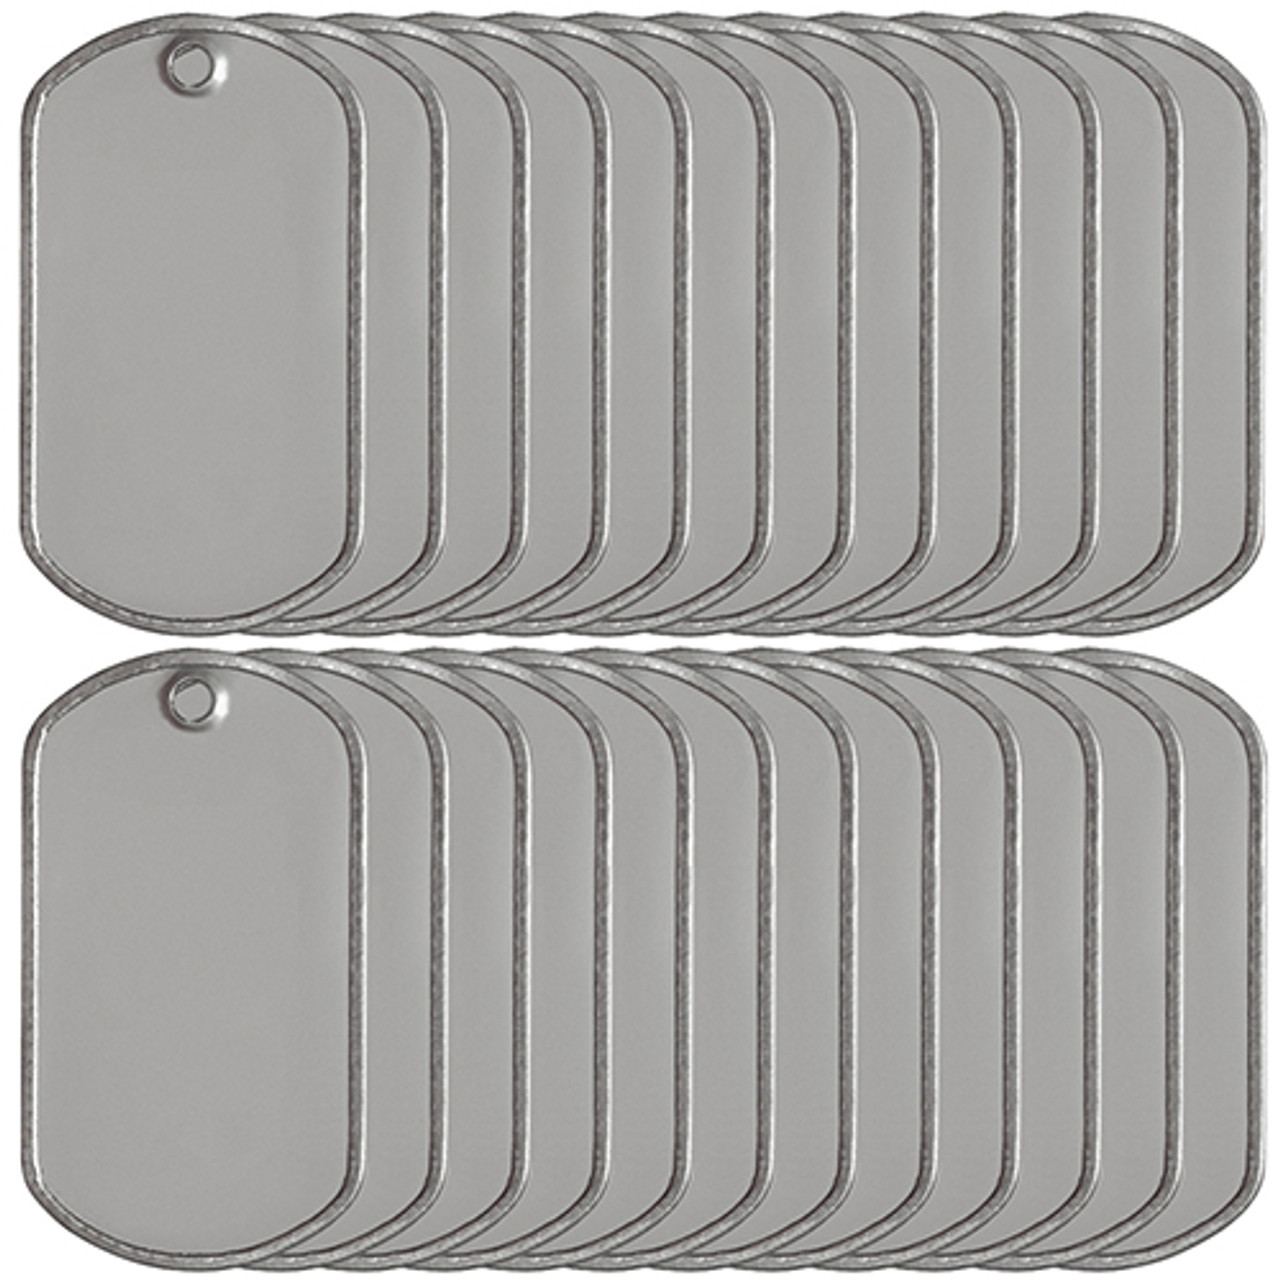 Blank matte stainless steel dog tags sold in bulk at low factory direct prices. We know dog tags because we make the dog tag chains for the US Military.